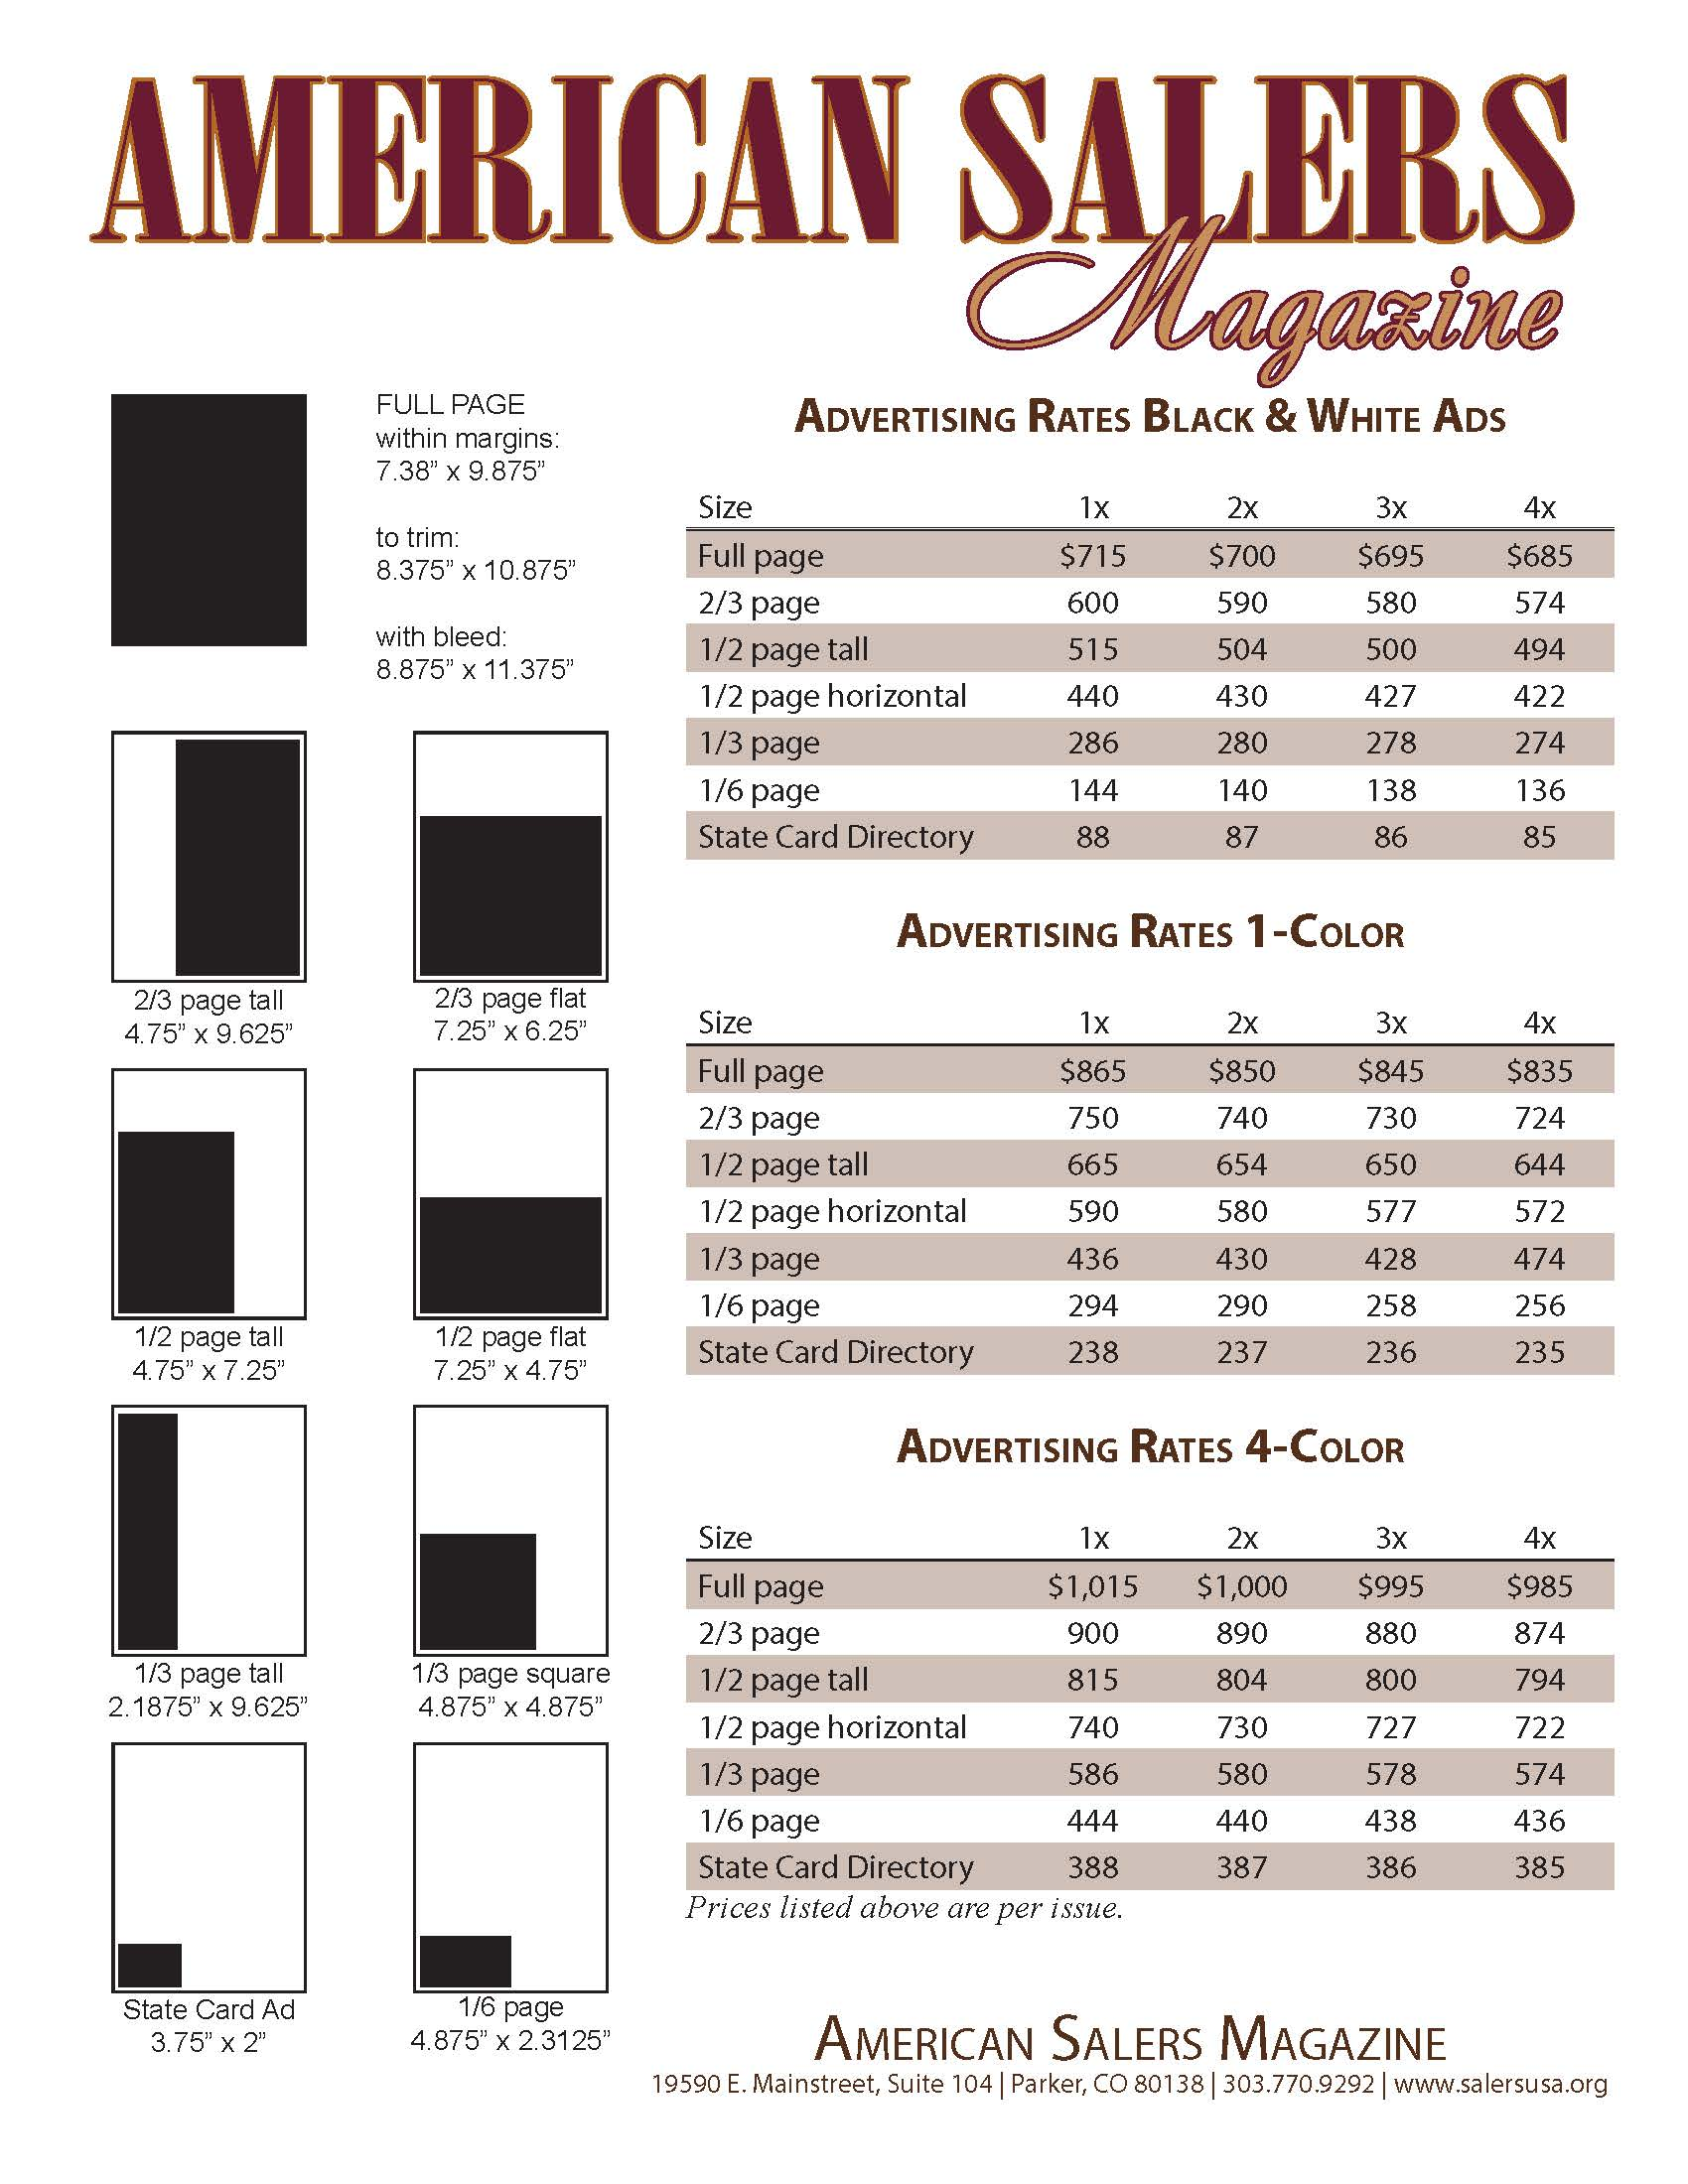 American Salers magazine rate card